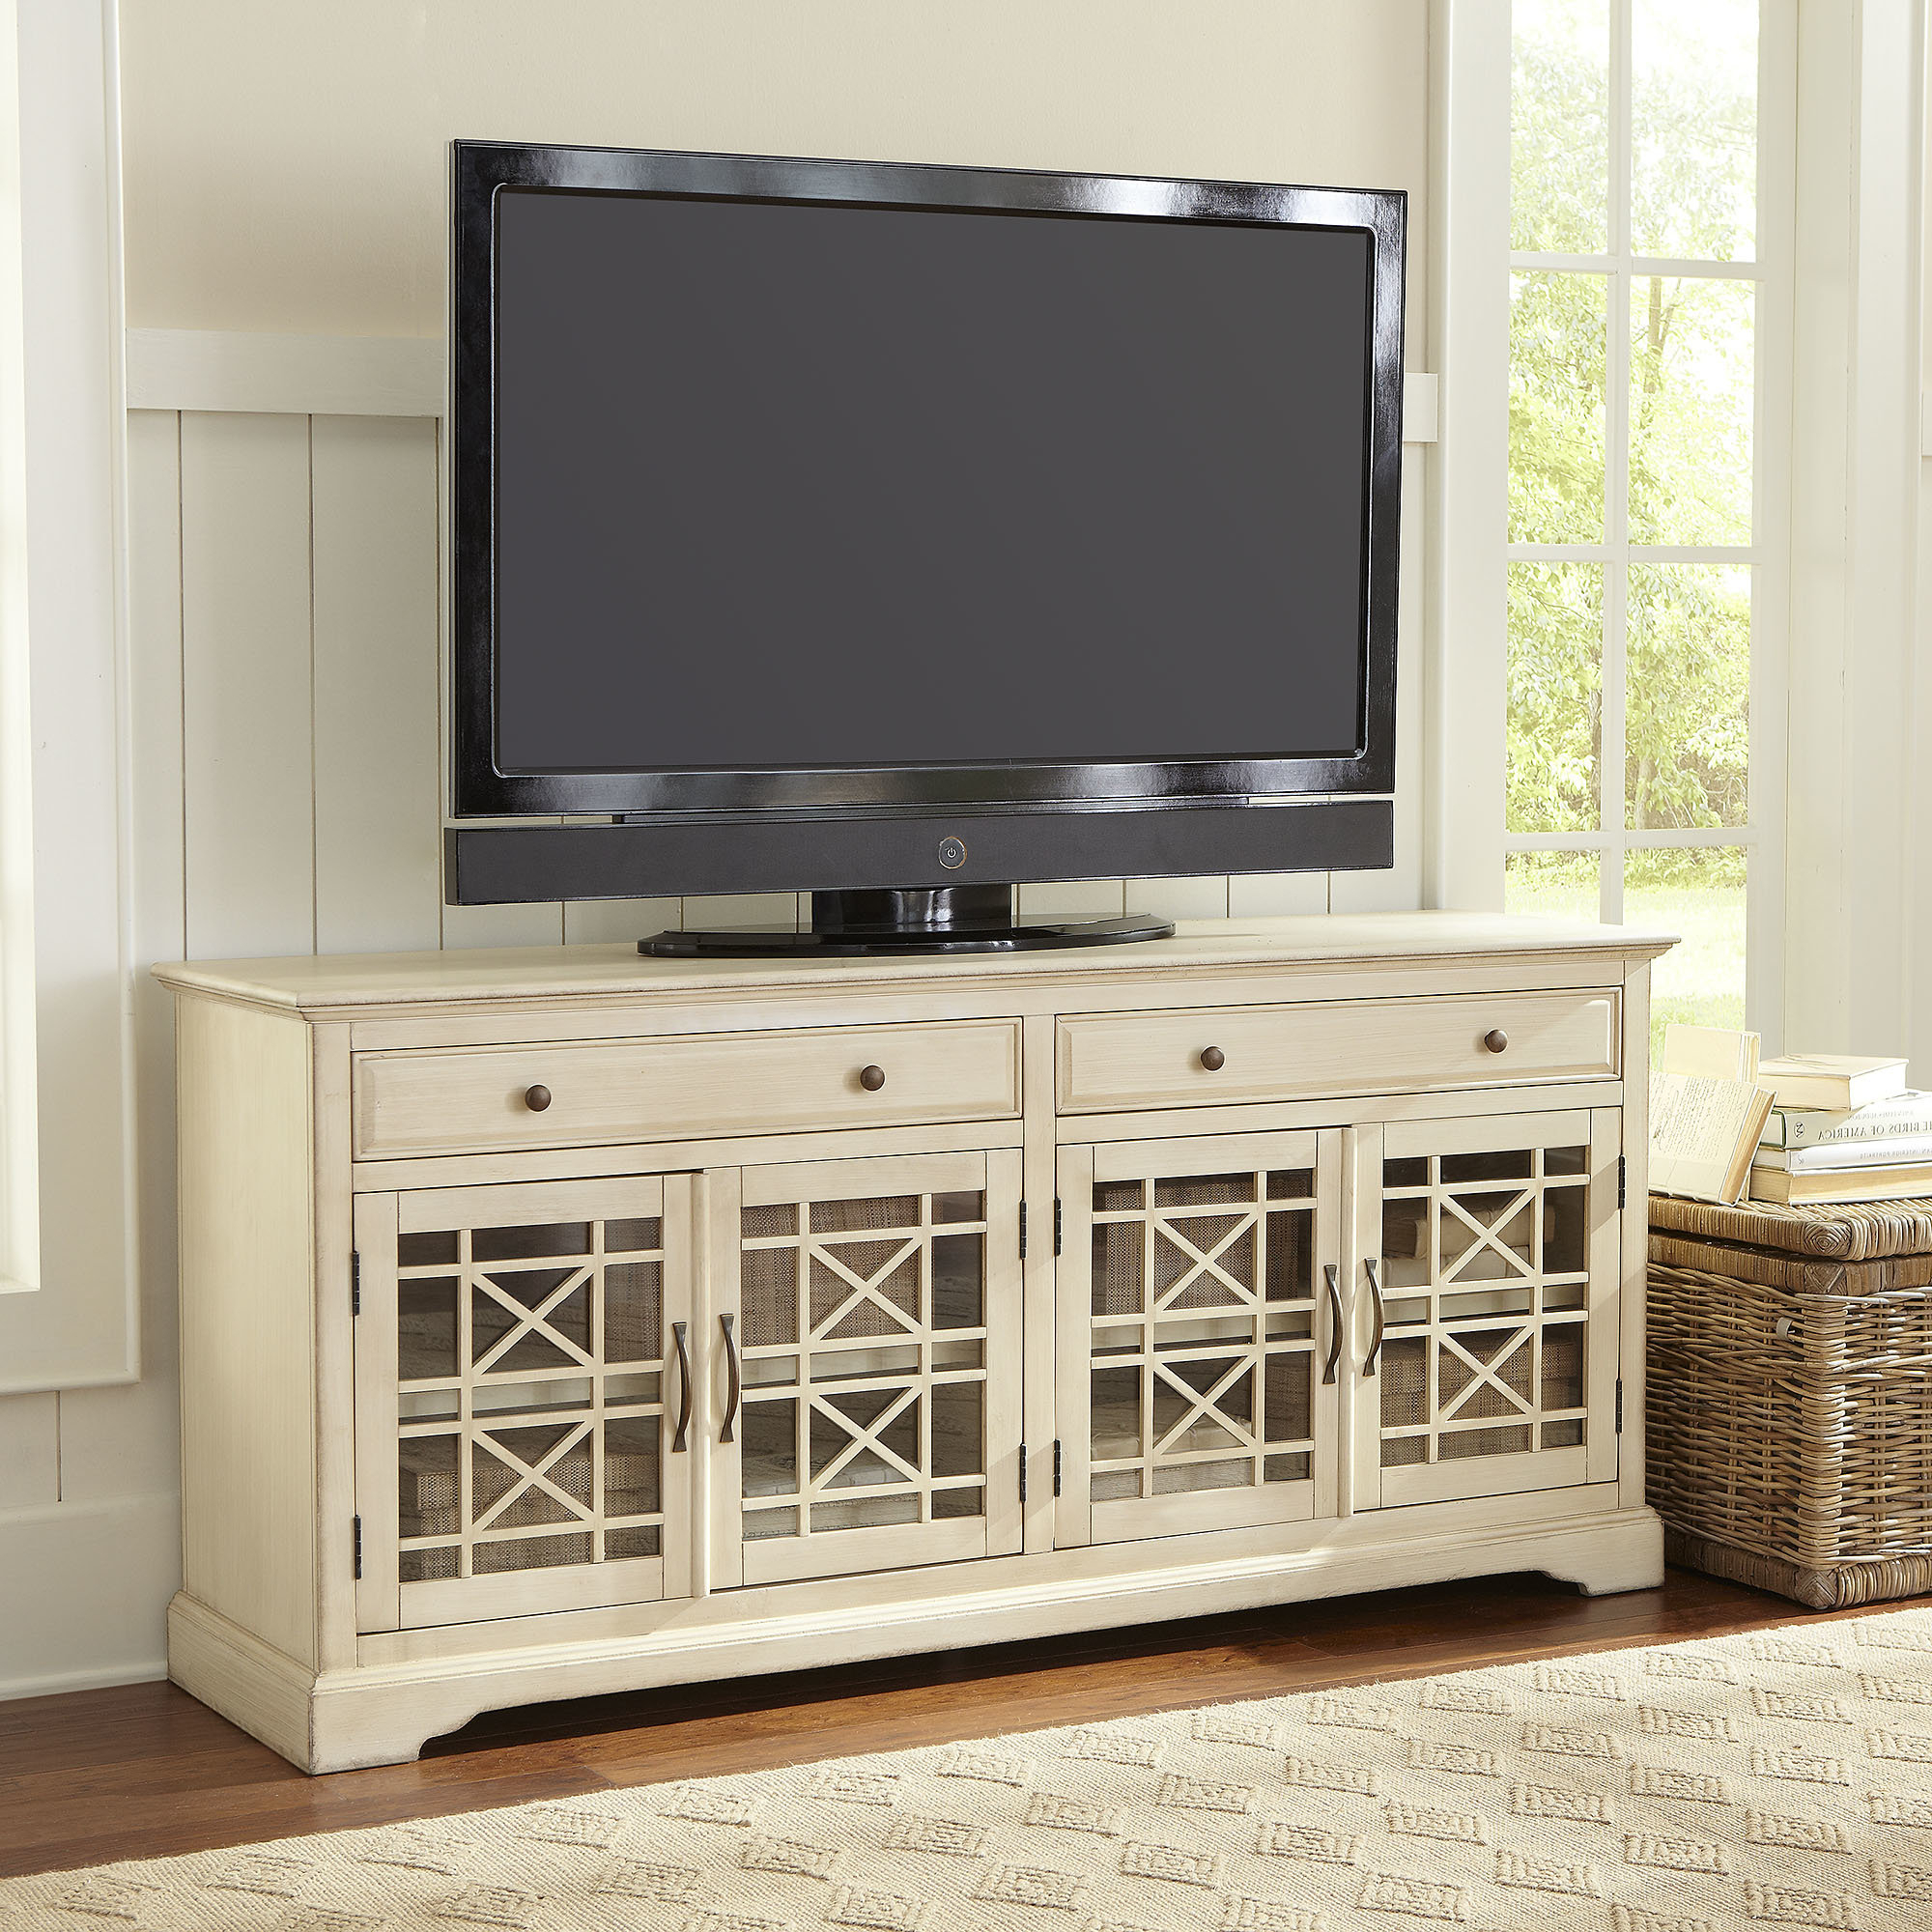 "2020 Daisi Tv Stand For Tvs Up To 70"" With Parmelee Tv Stands For Tvs Up To 65"" (Gallery 6 of 20)"